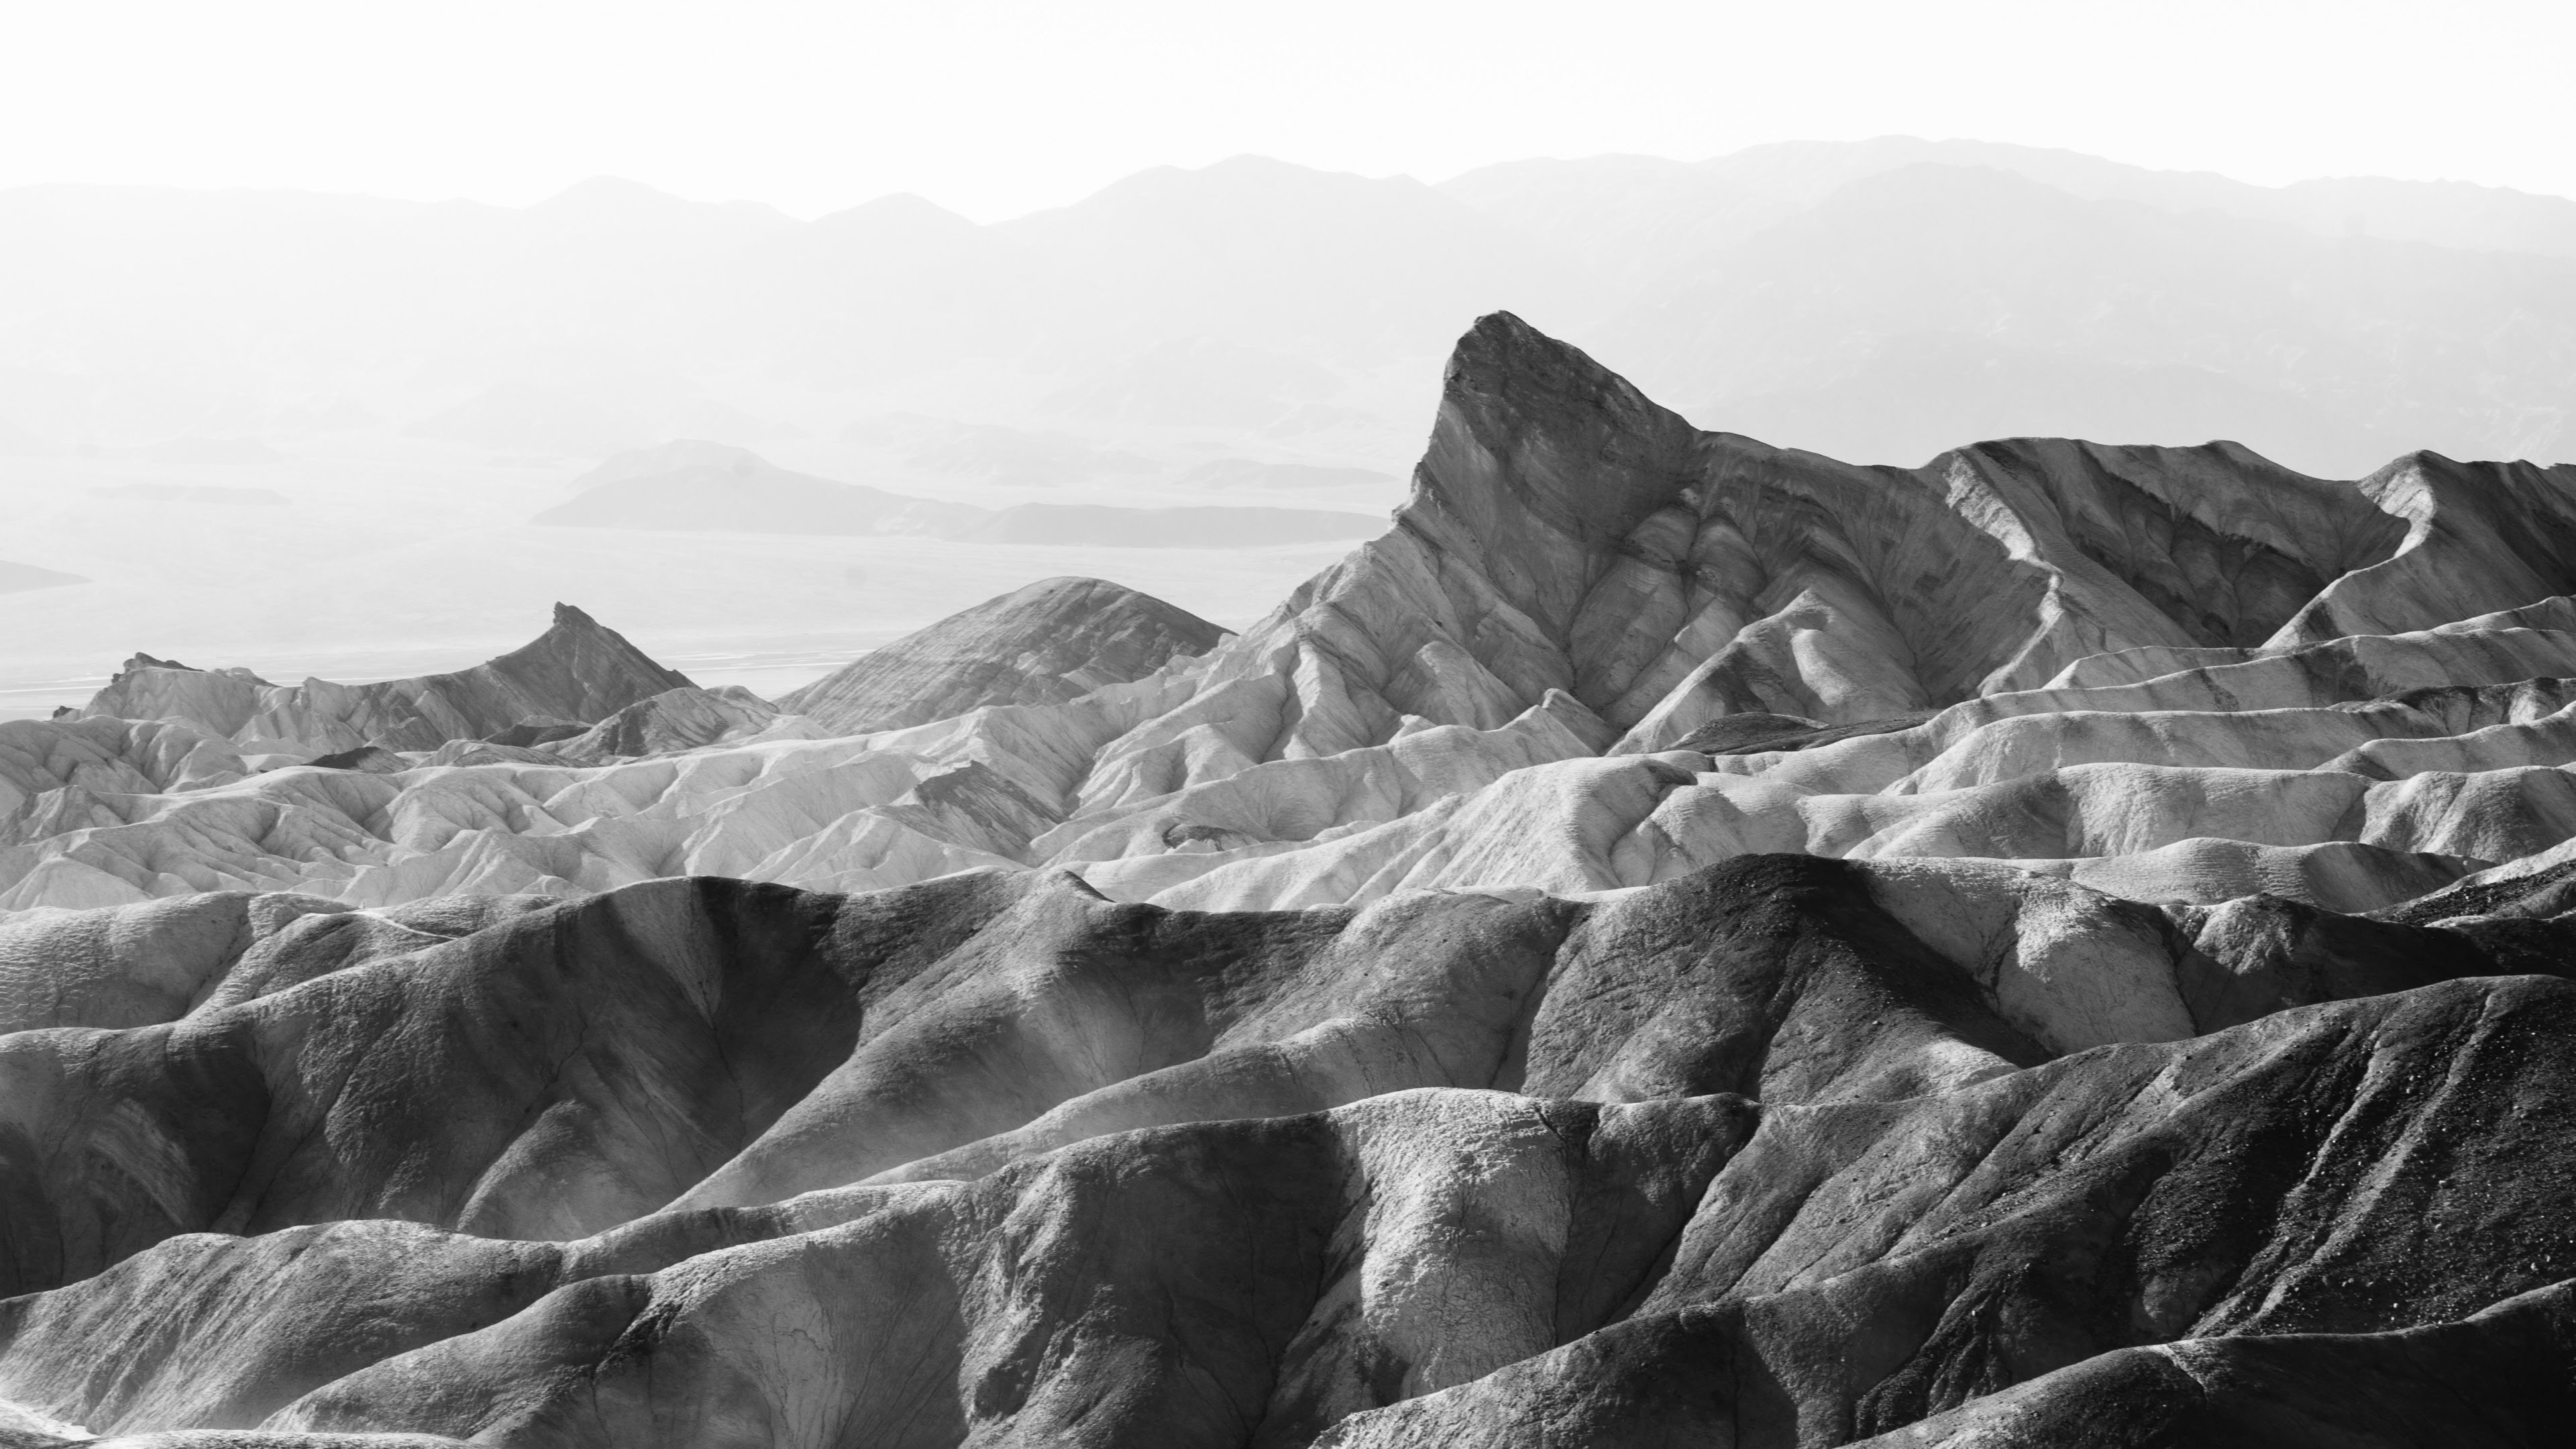 Landscape Black And White Desert And Death Valley Hd 4k Wallpaper